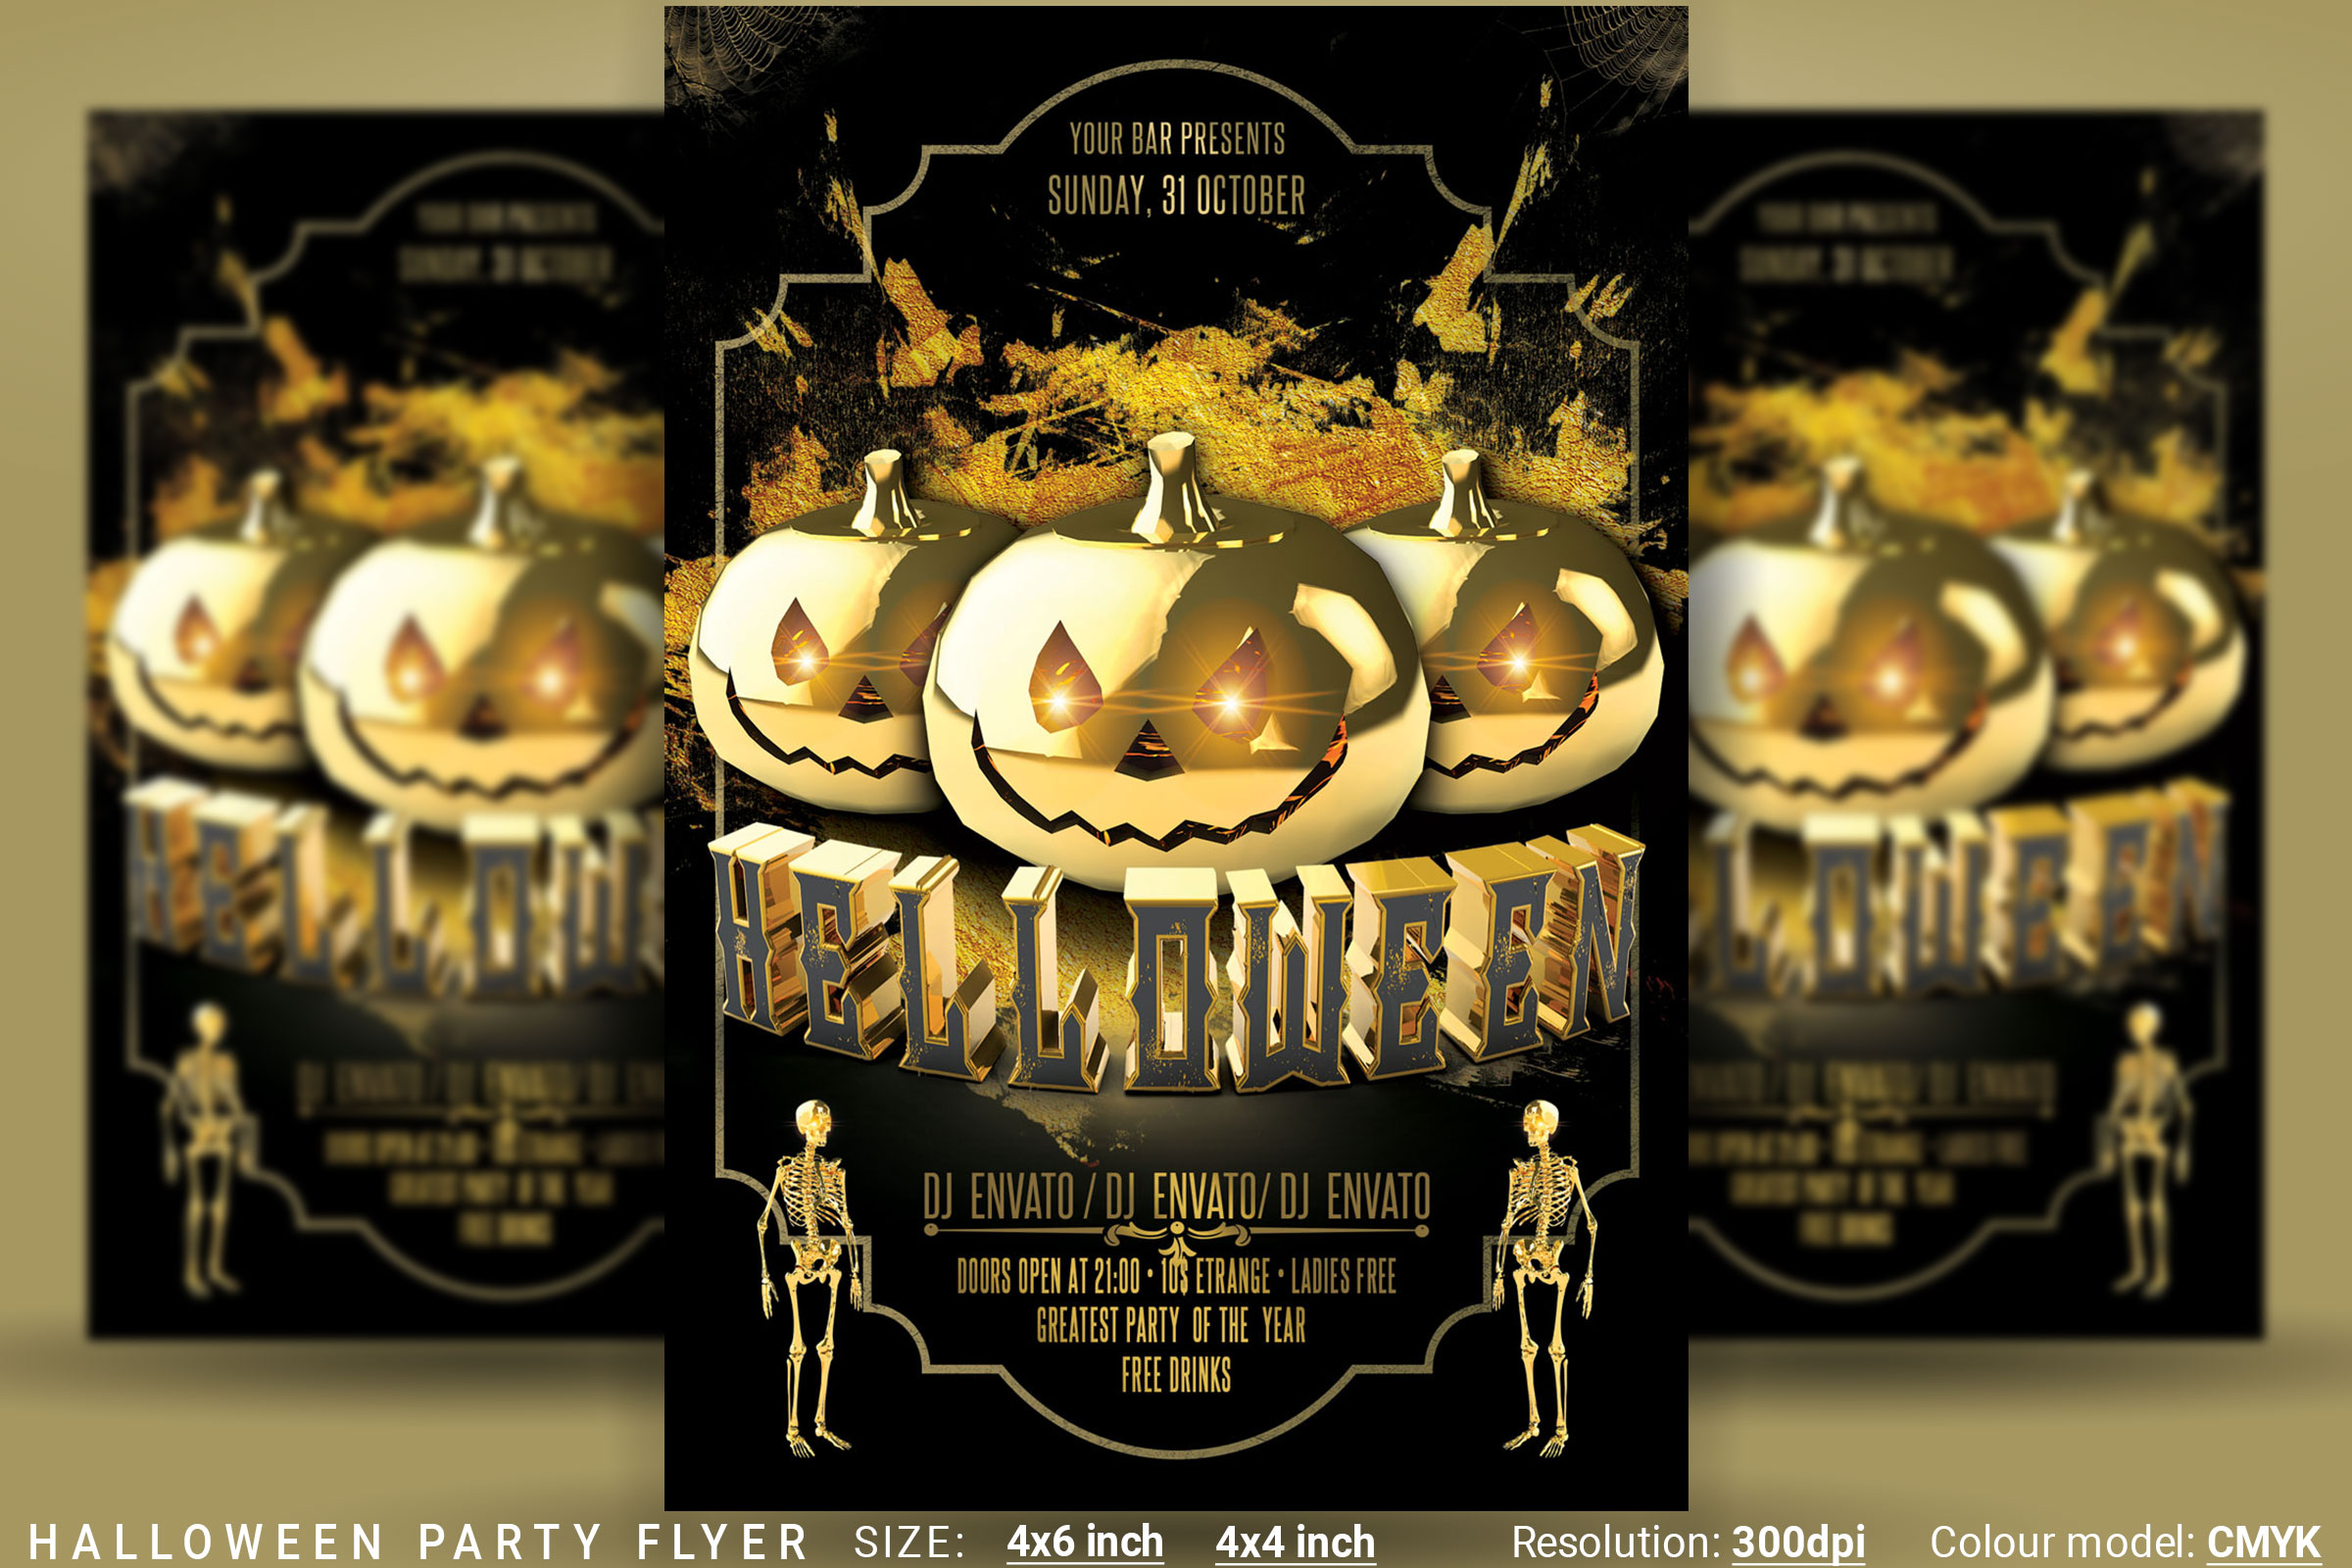 Halloween Party Flyer example image 1